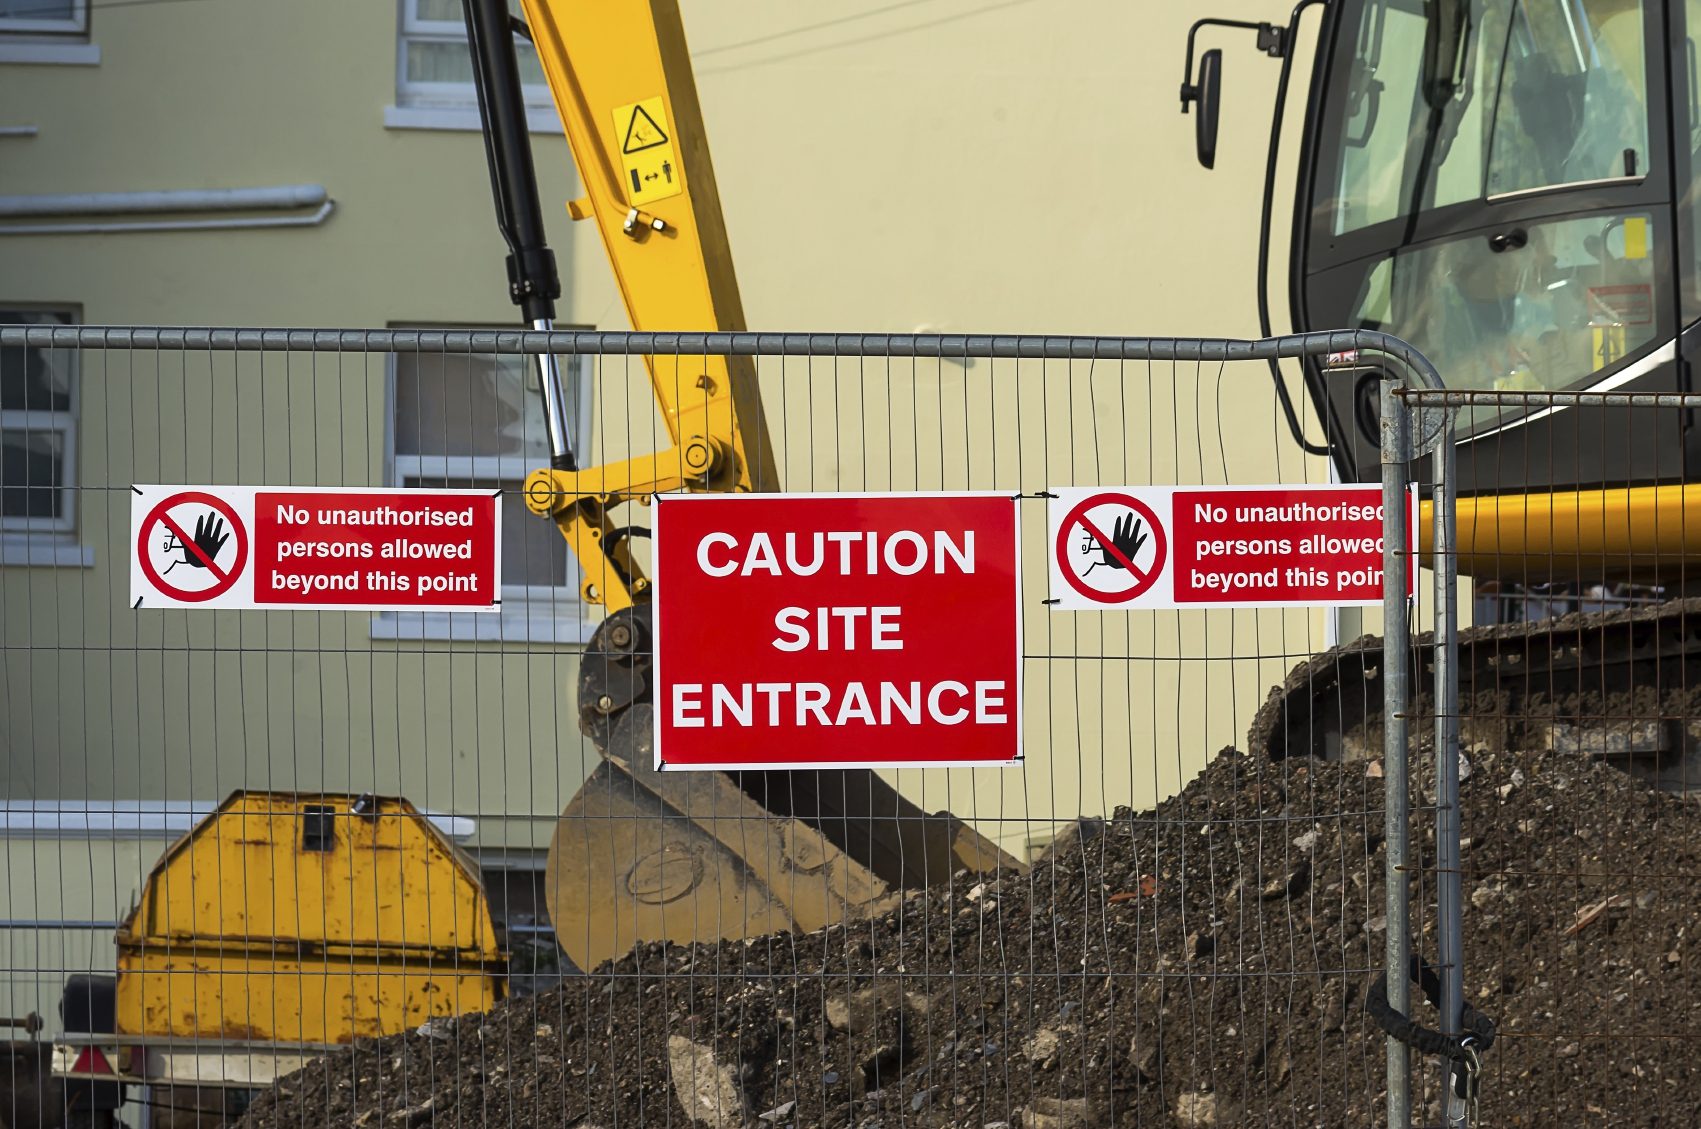 Construction Site Entrance - iStock_000052232216_Medium